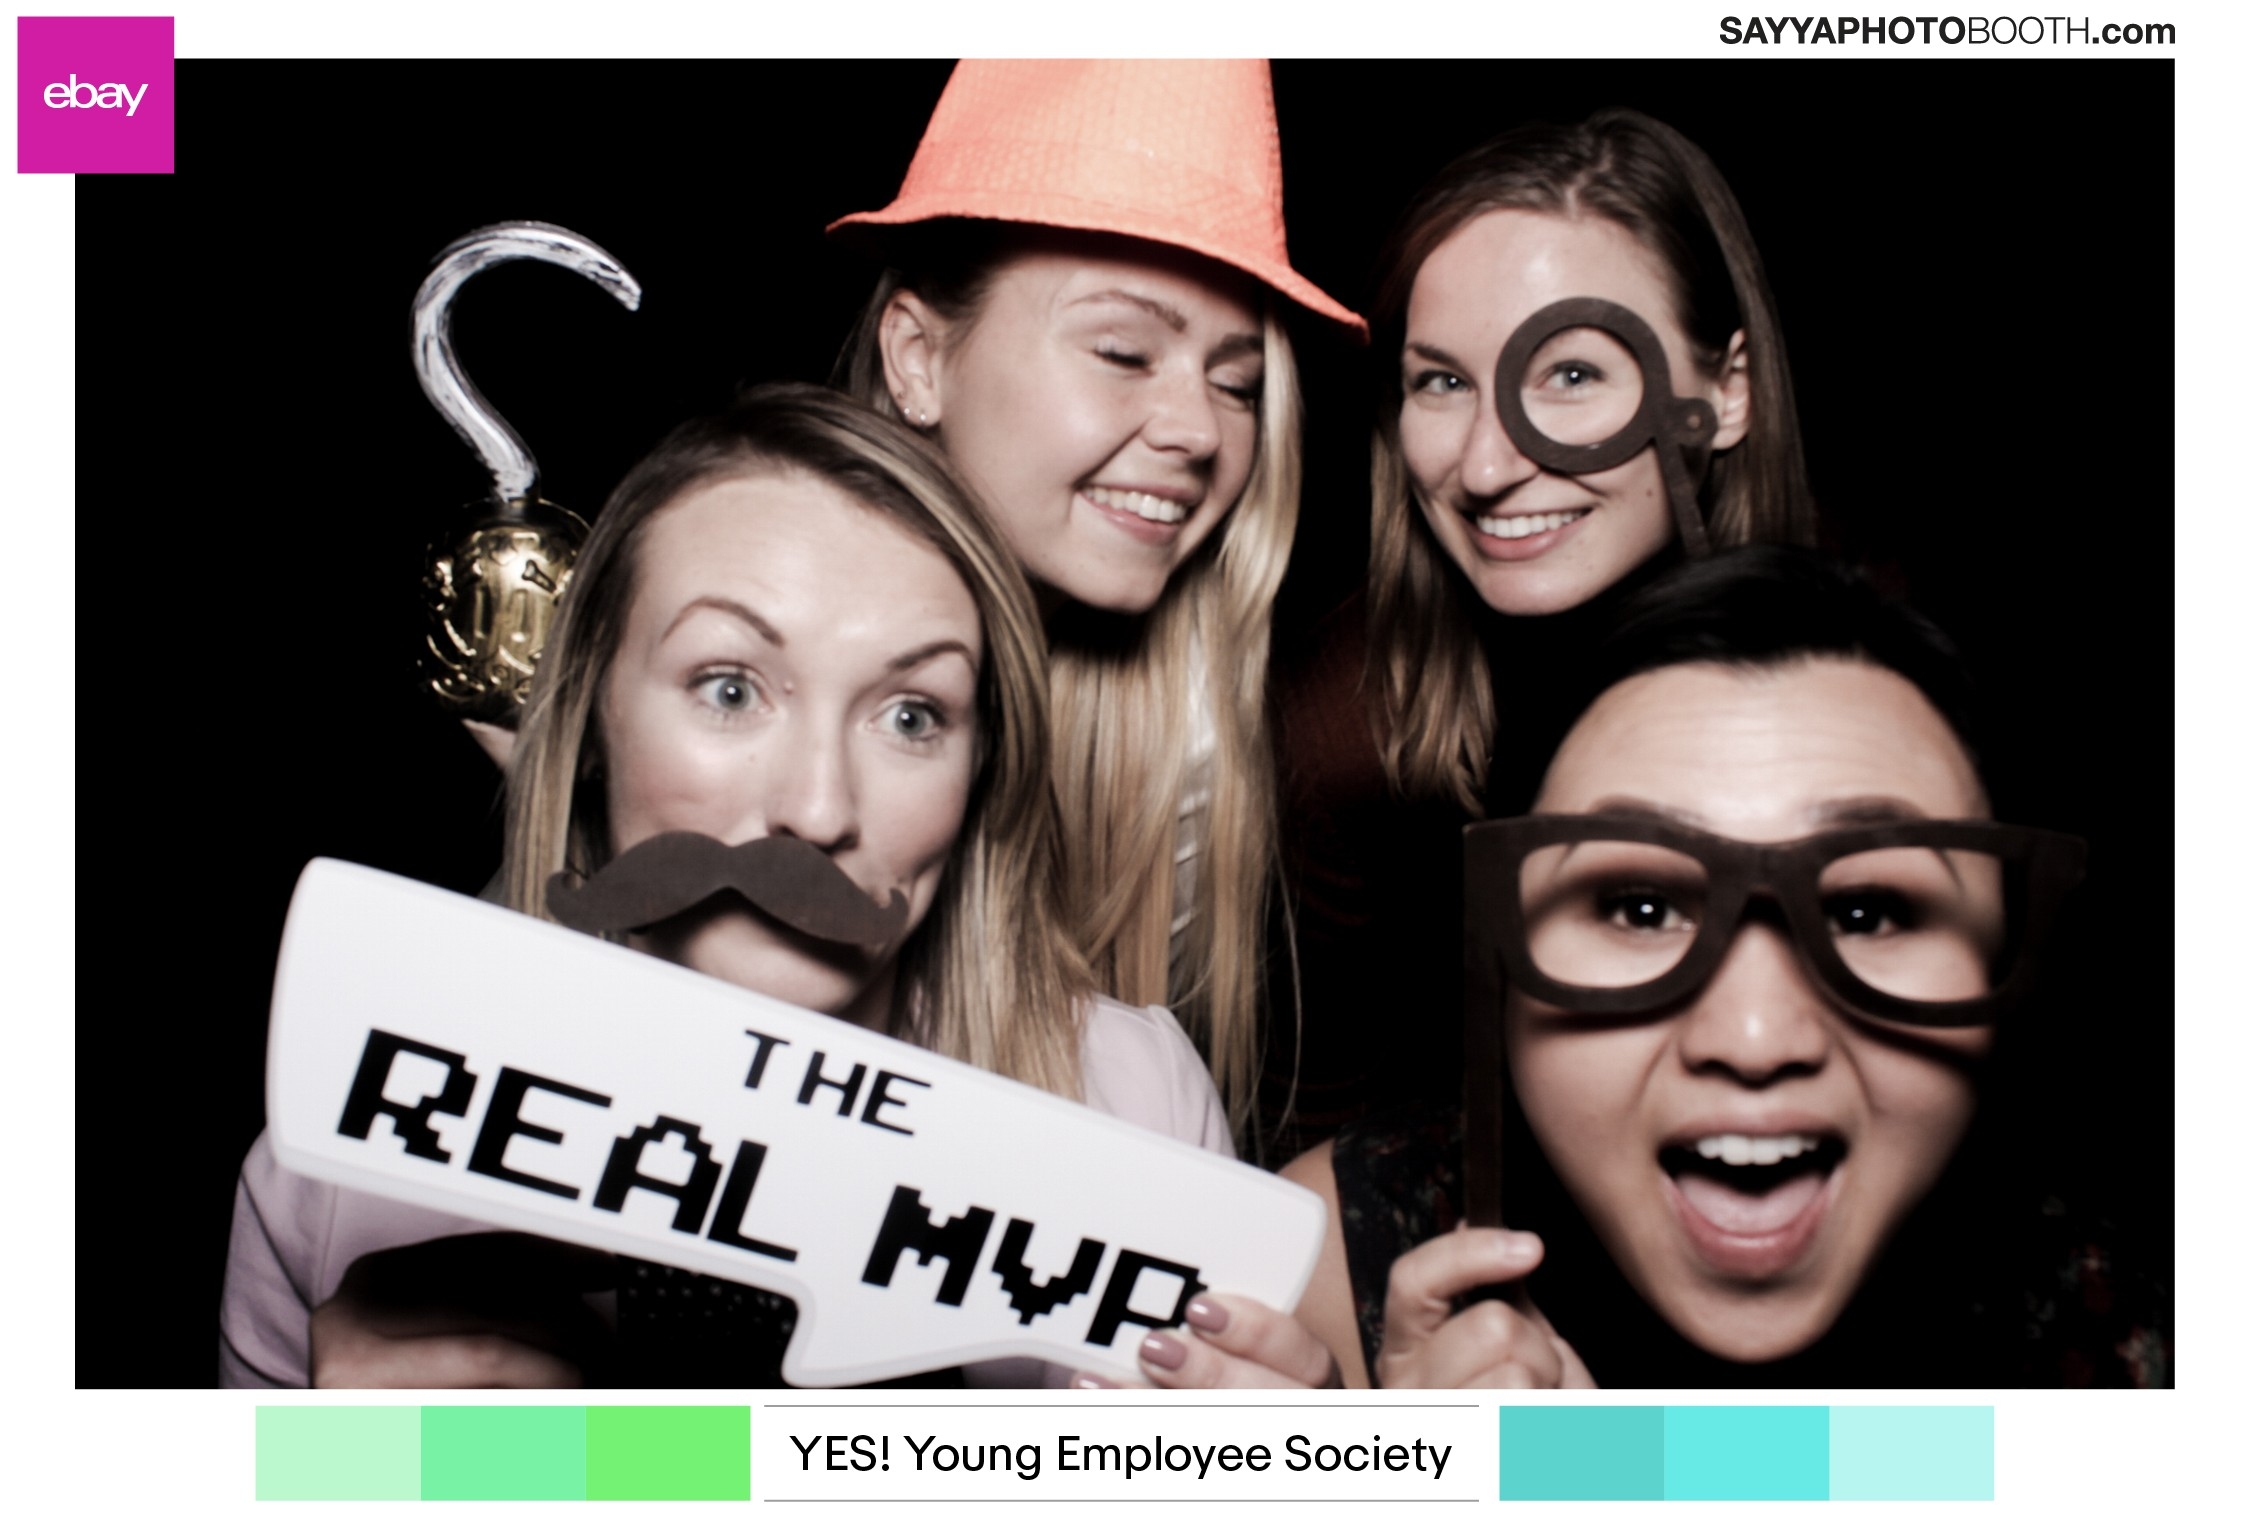 eBay's YES Event